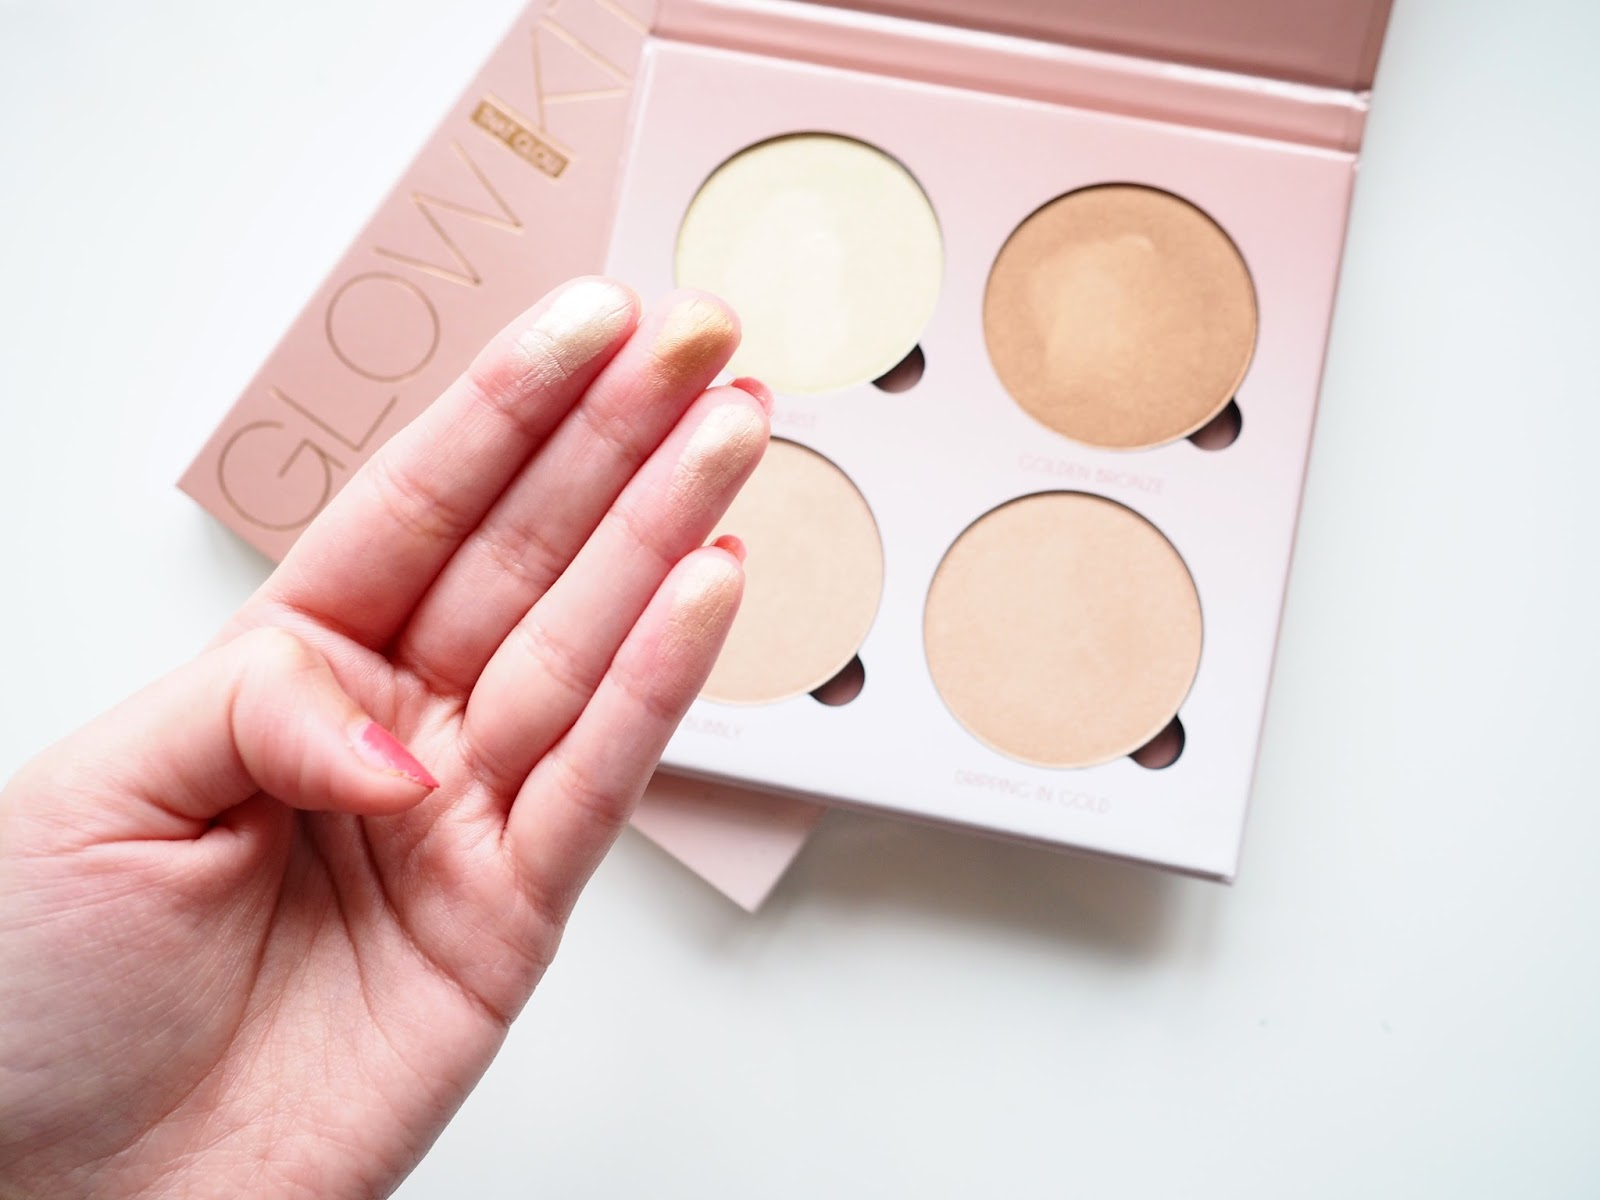 It's Cultured - Anastasia Beverley Hills Shimmery Highlight Glow Kit Swatches and Colour